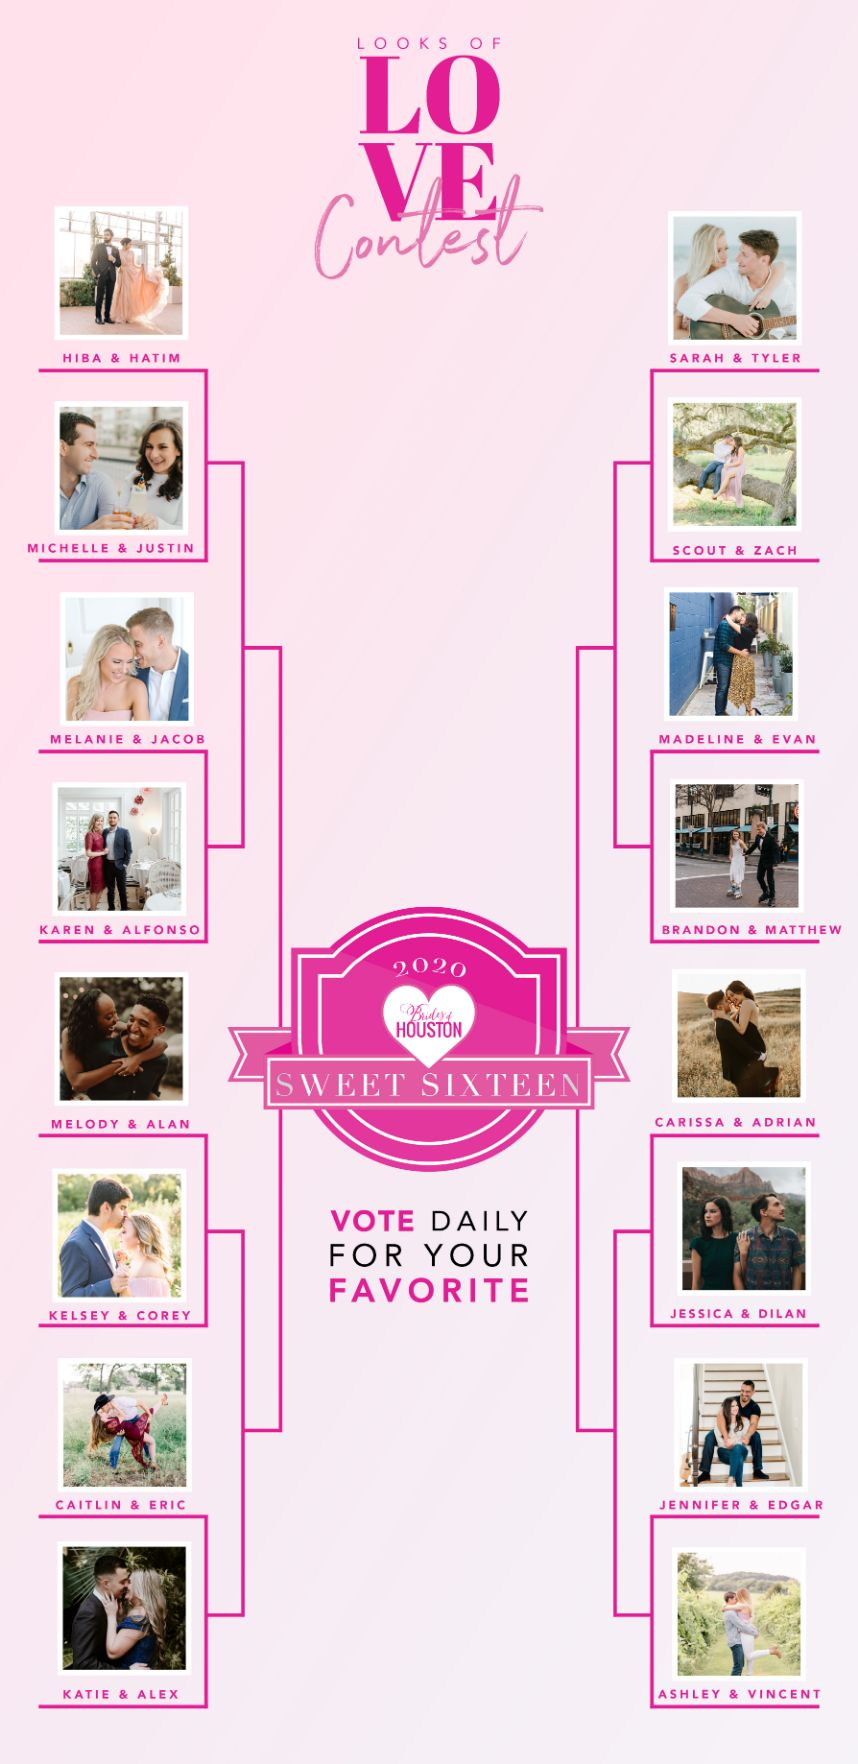 Looks of Love Contest 2020 – Cast your vote for our Sweet 16 Finalists!